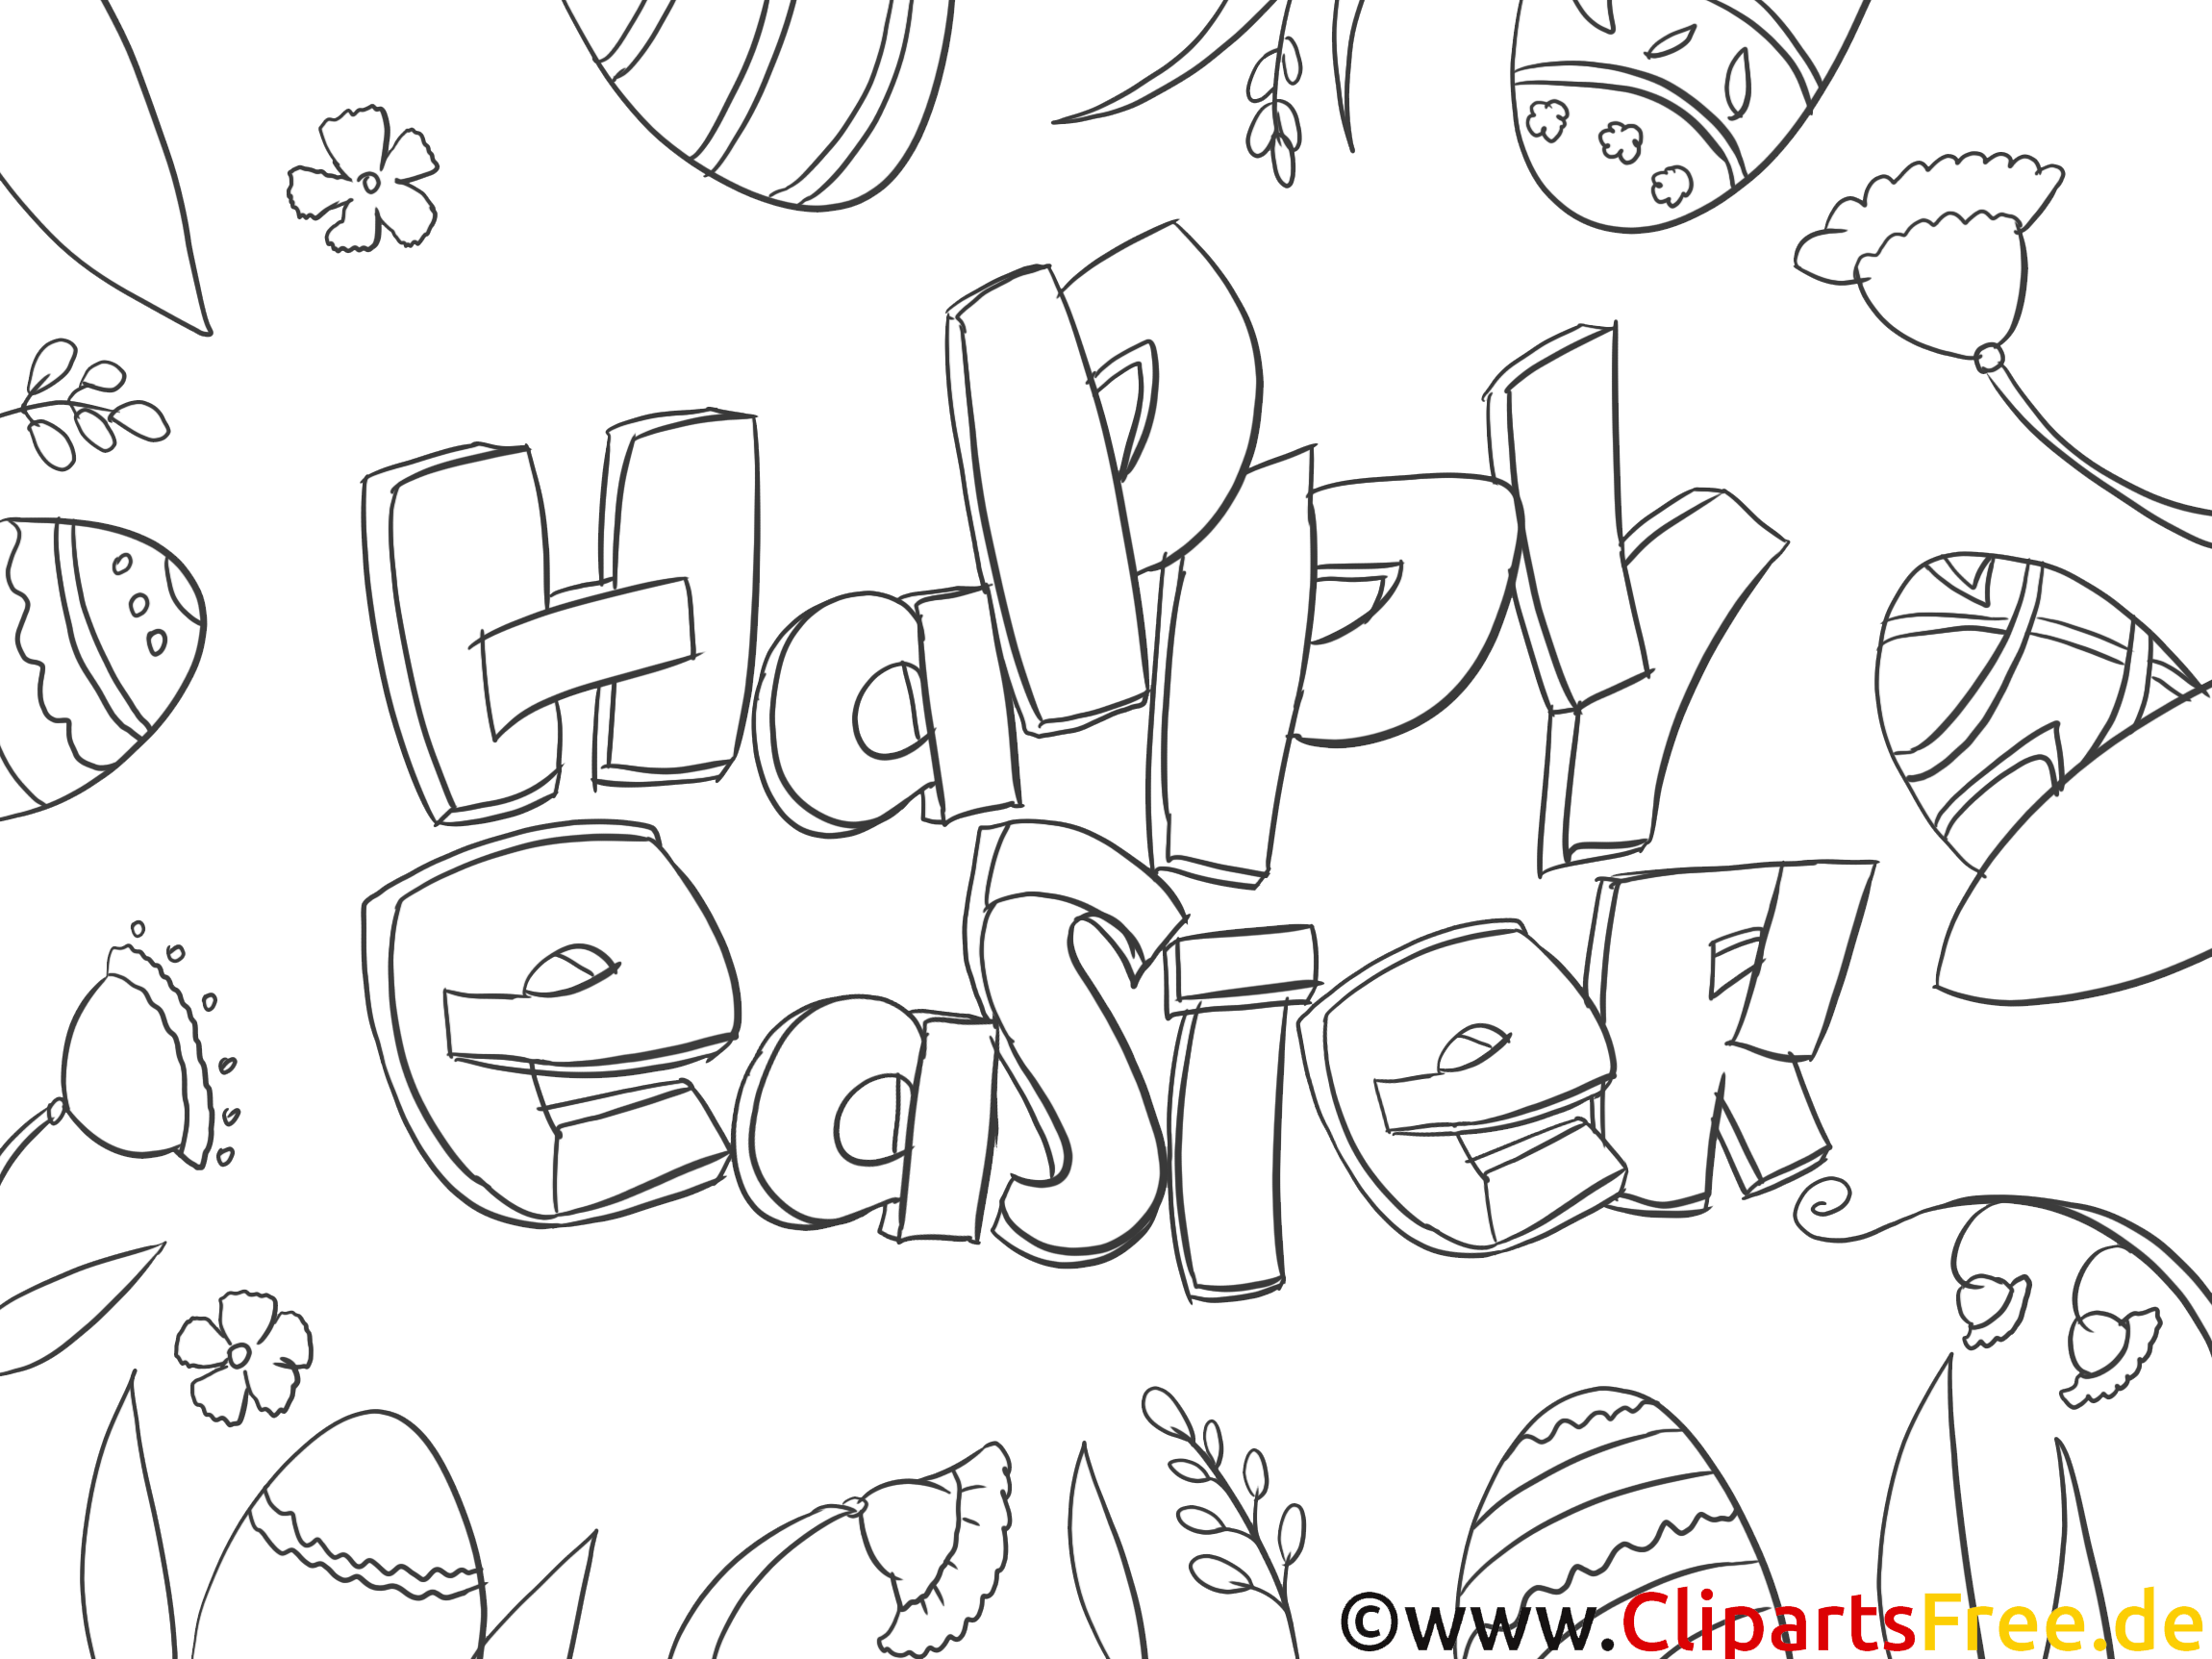 Colouring Sheet Happy Easter download and print